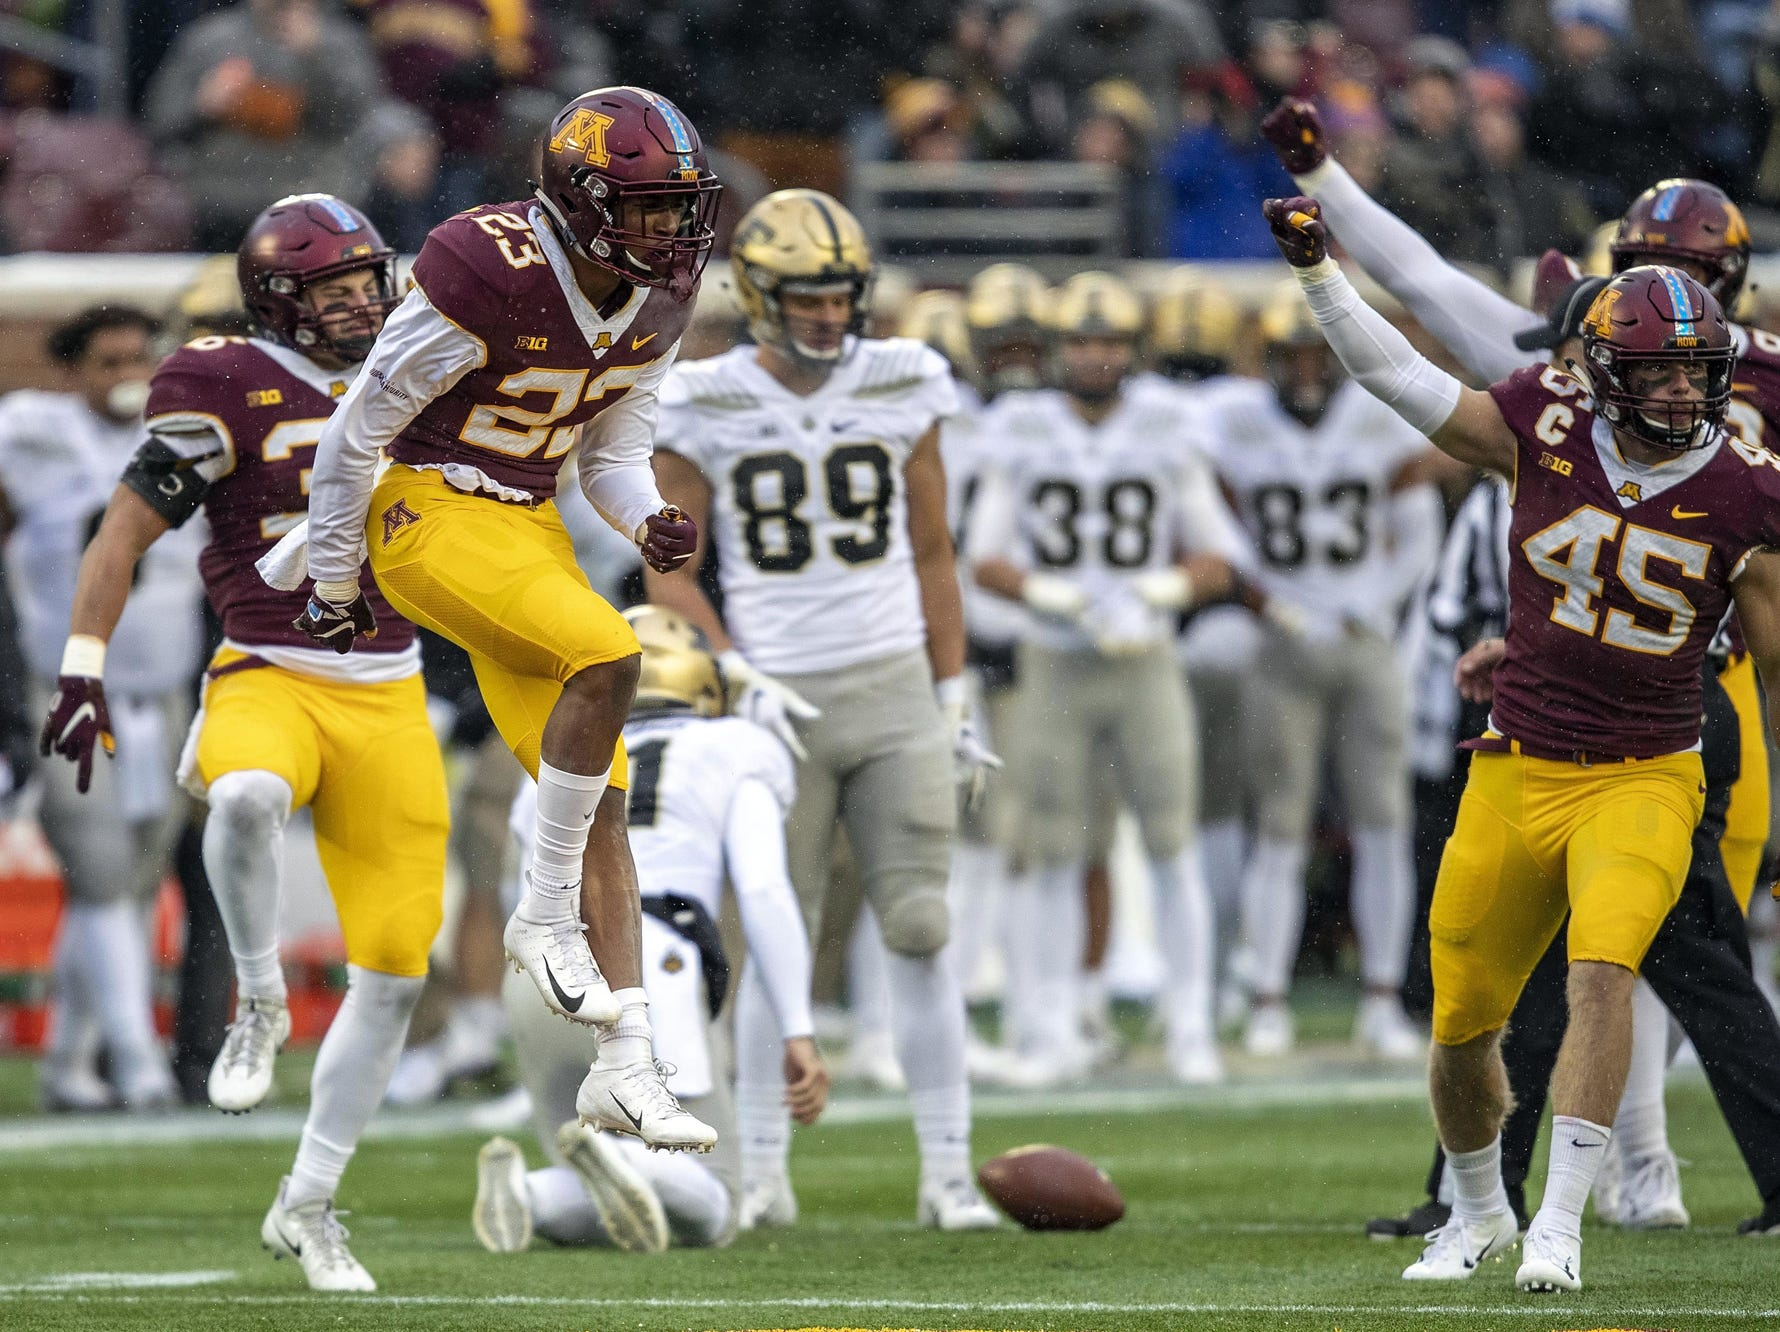 Minnesota defensive back Jordan Howden celebrates after the Gophers stopped Purdue on fourth down during the first half Saturday.